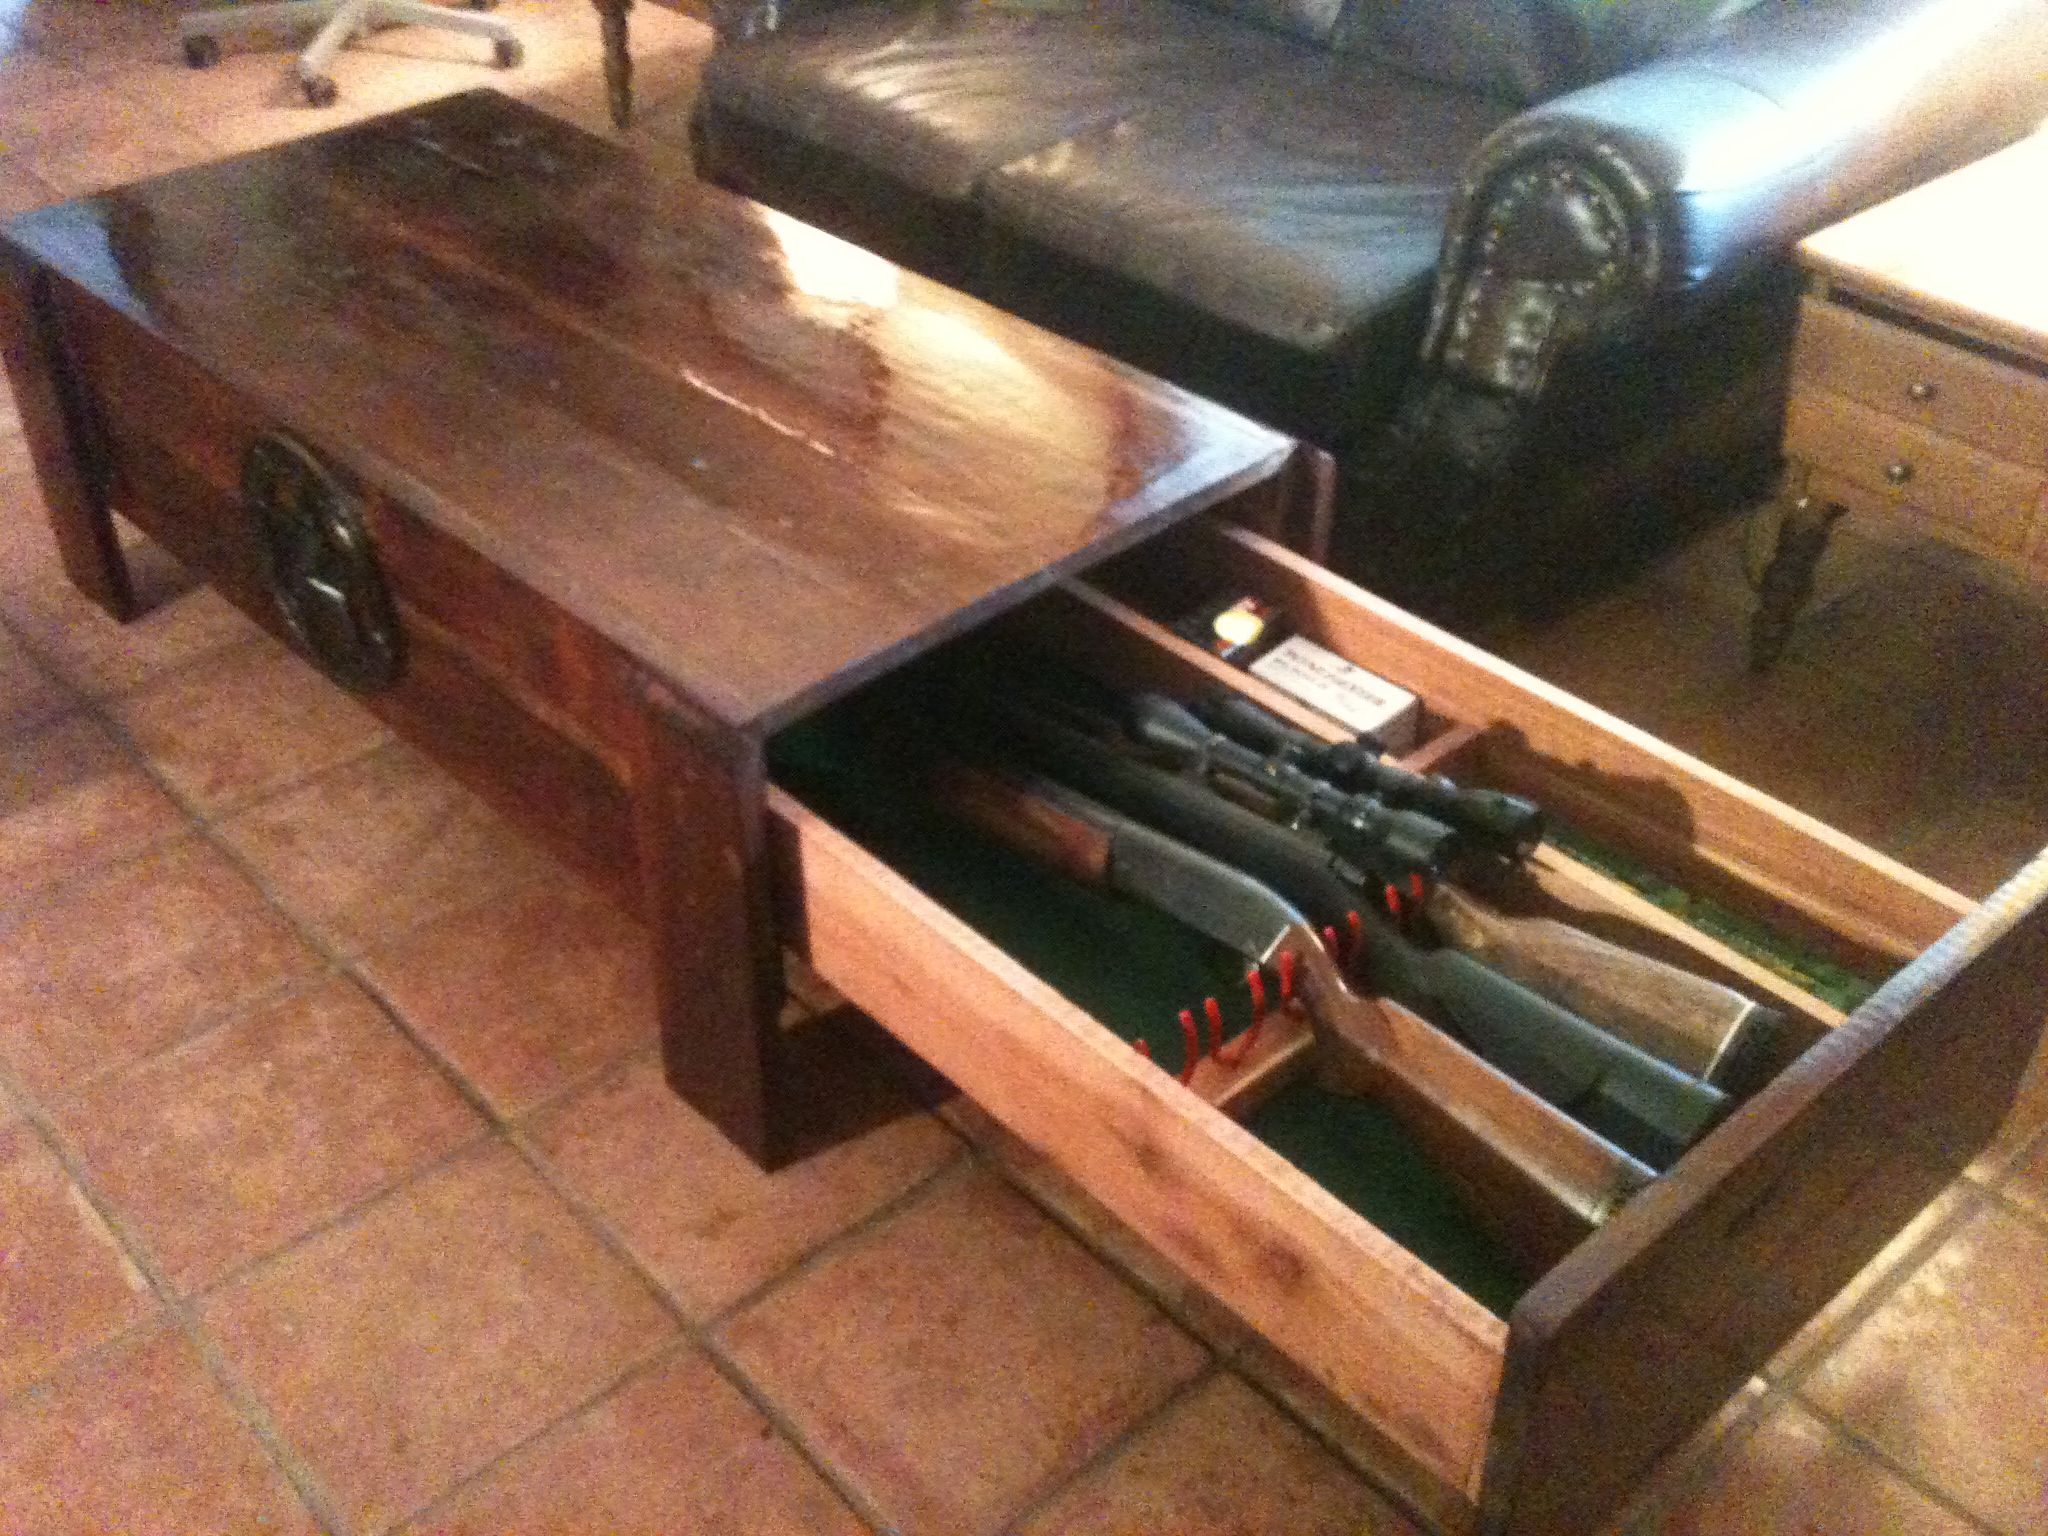 Cedar Coffee Table with Hidden drawer for firearms or just